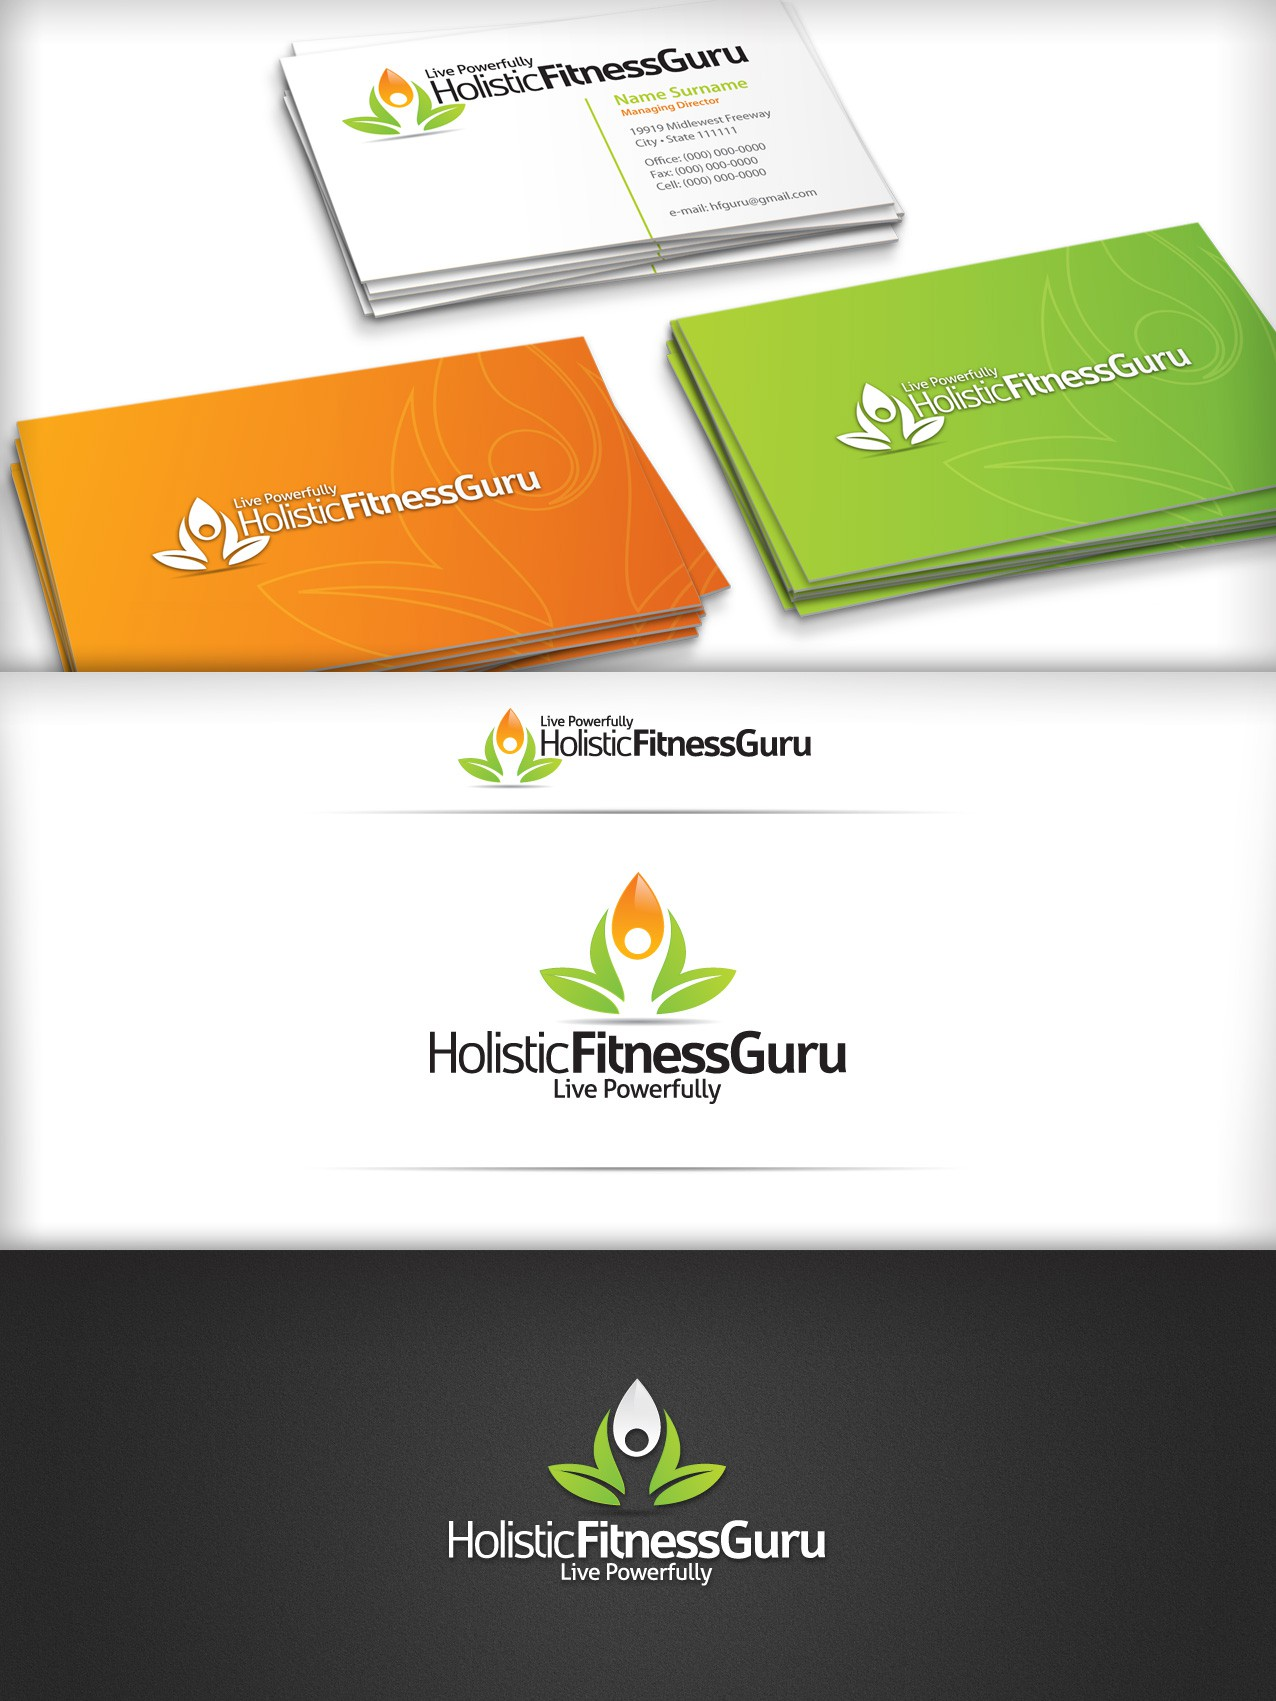 New logo wanted for Holistic Fitness Guru